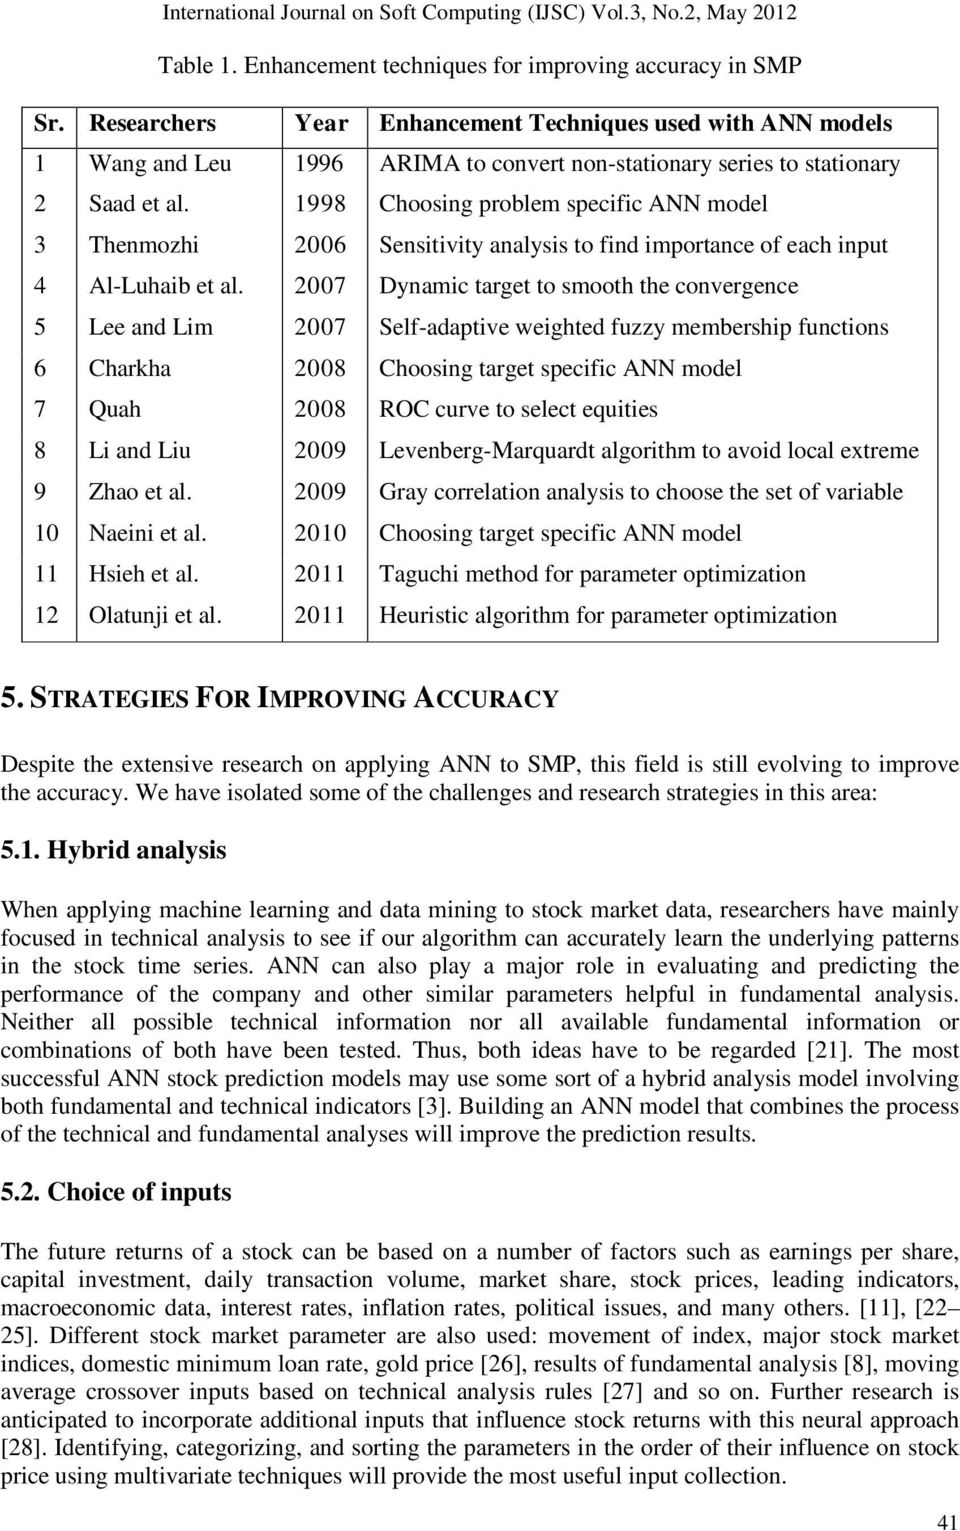 ACCURACY DRIVEN ARTIFICIAL NEURAL NETWORKS IN STOCK MARKET